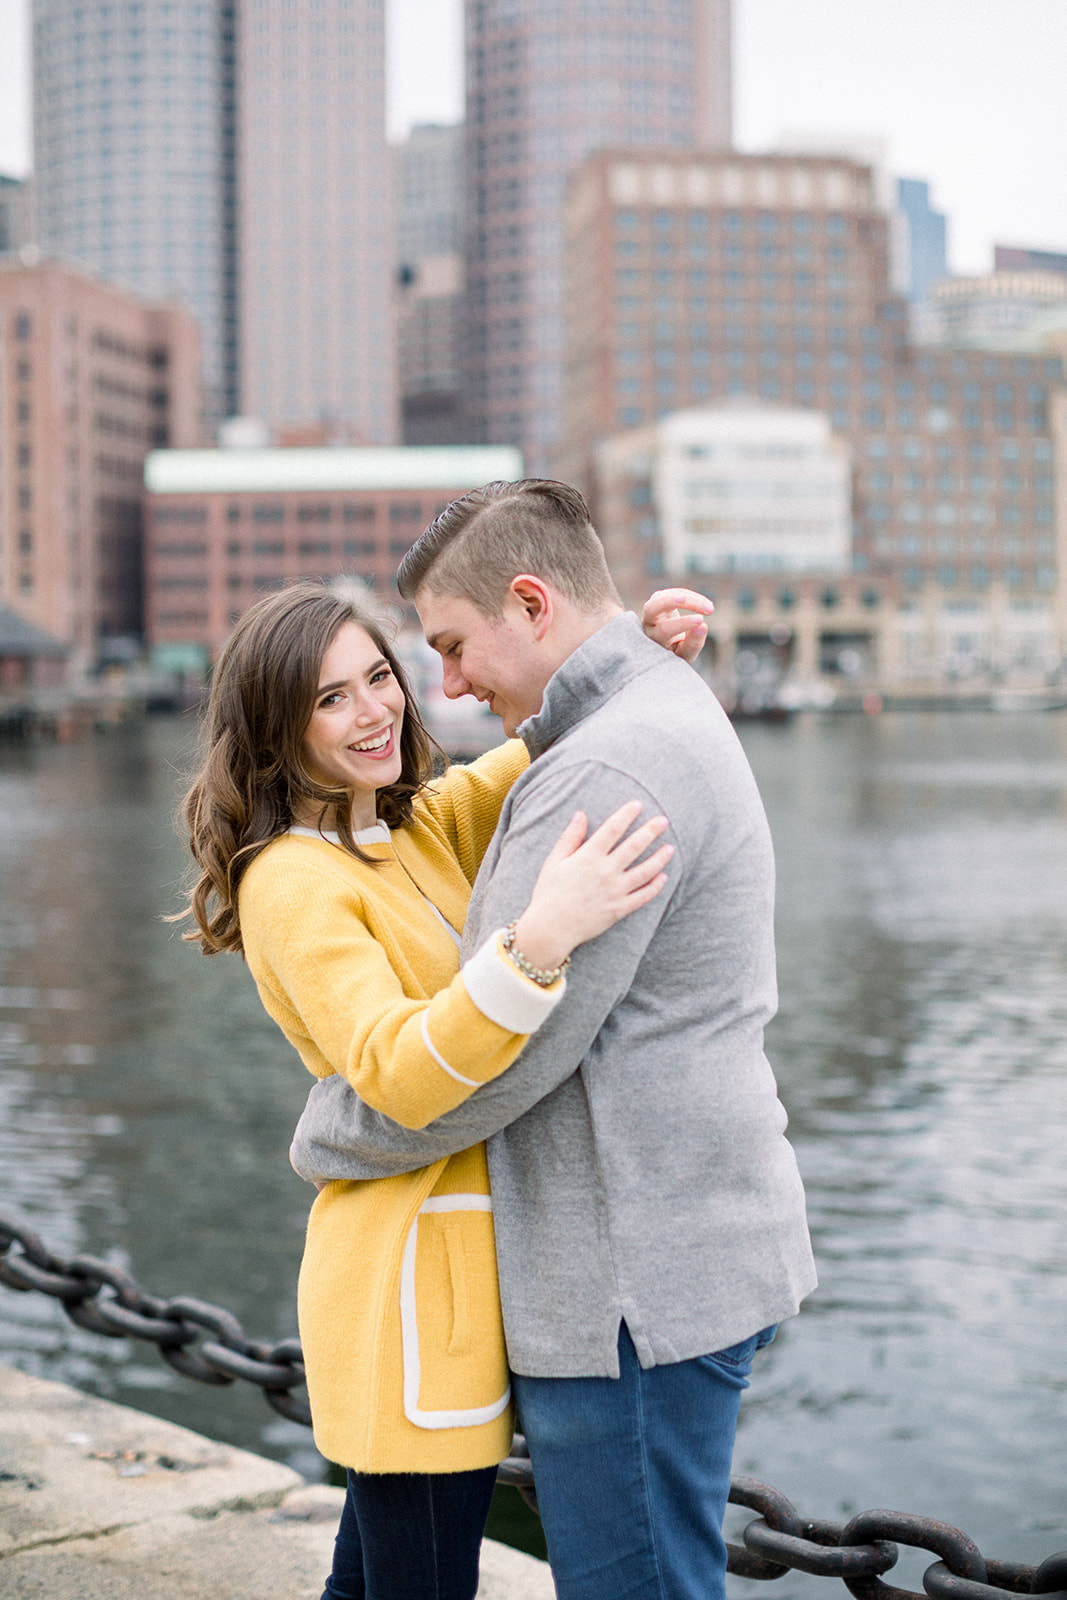 Seaport-Boston-Winter-Engagement-Photos-By-Halie-1265_websize